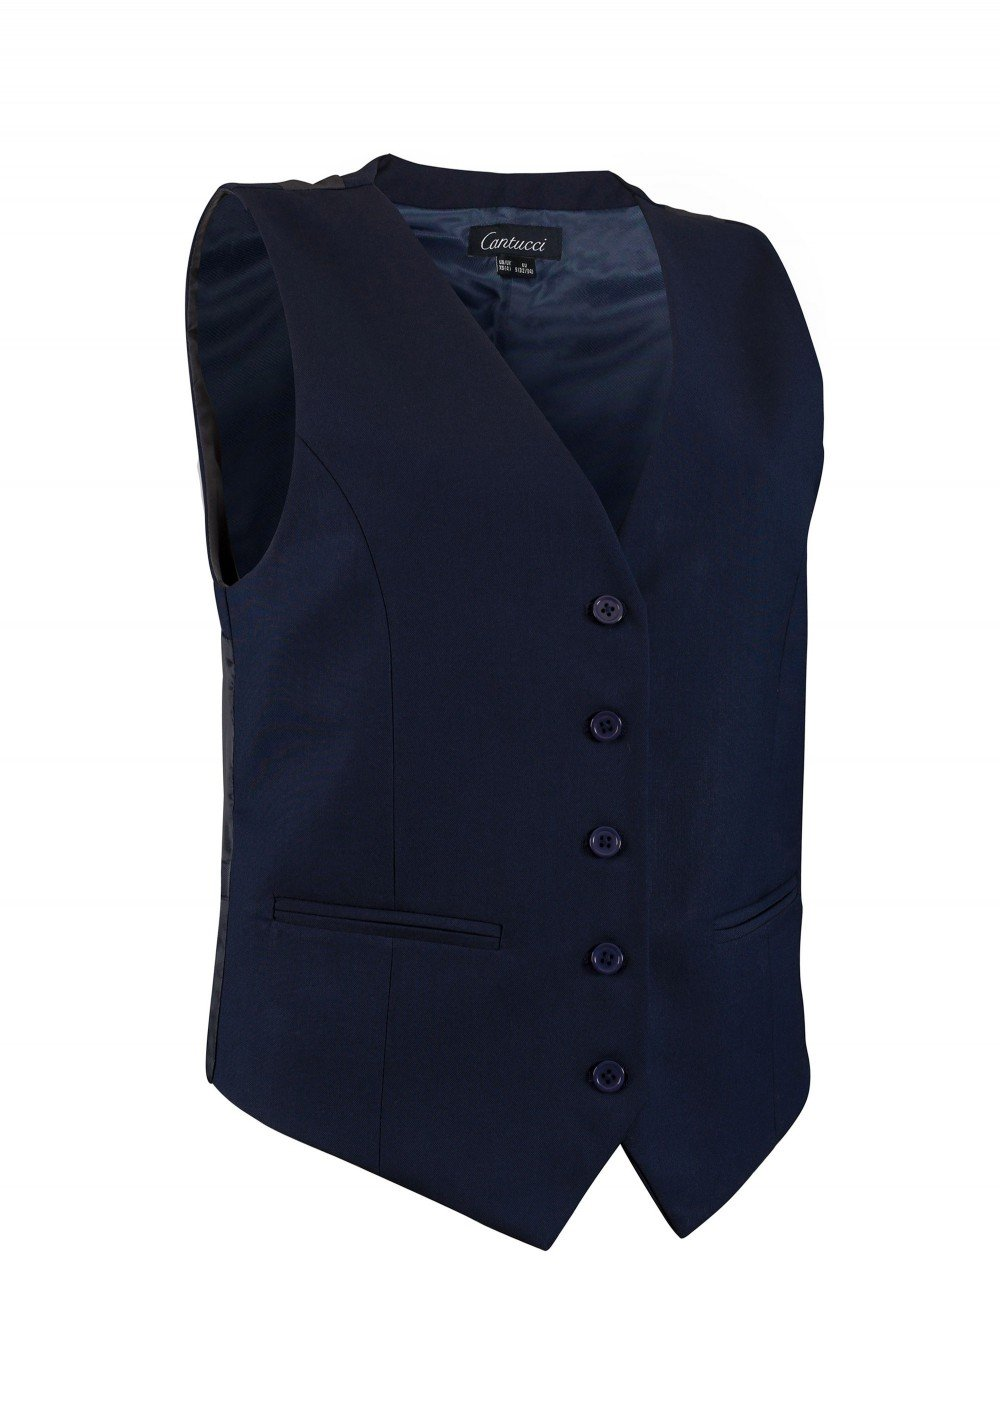 Women's Uniform Vest in Navy